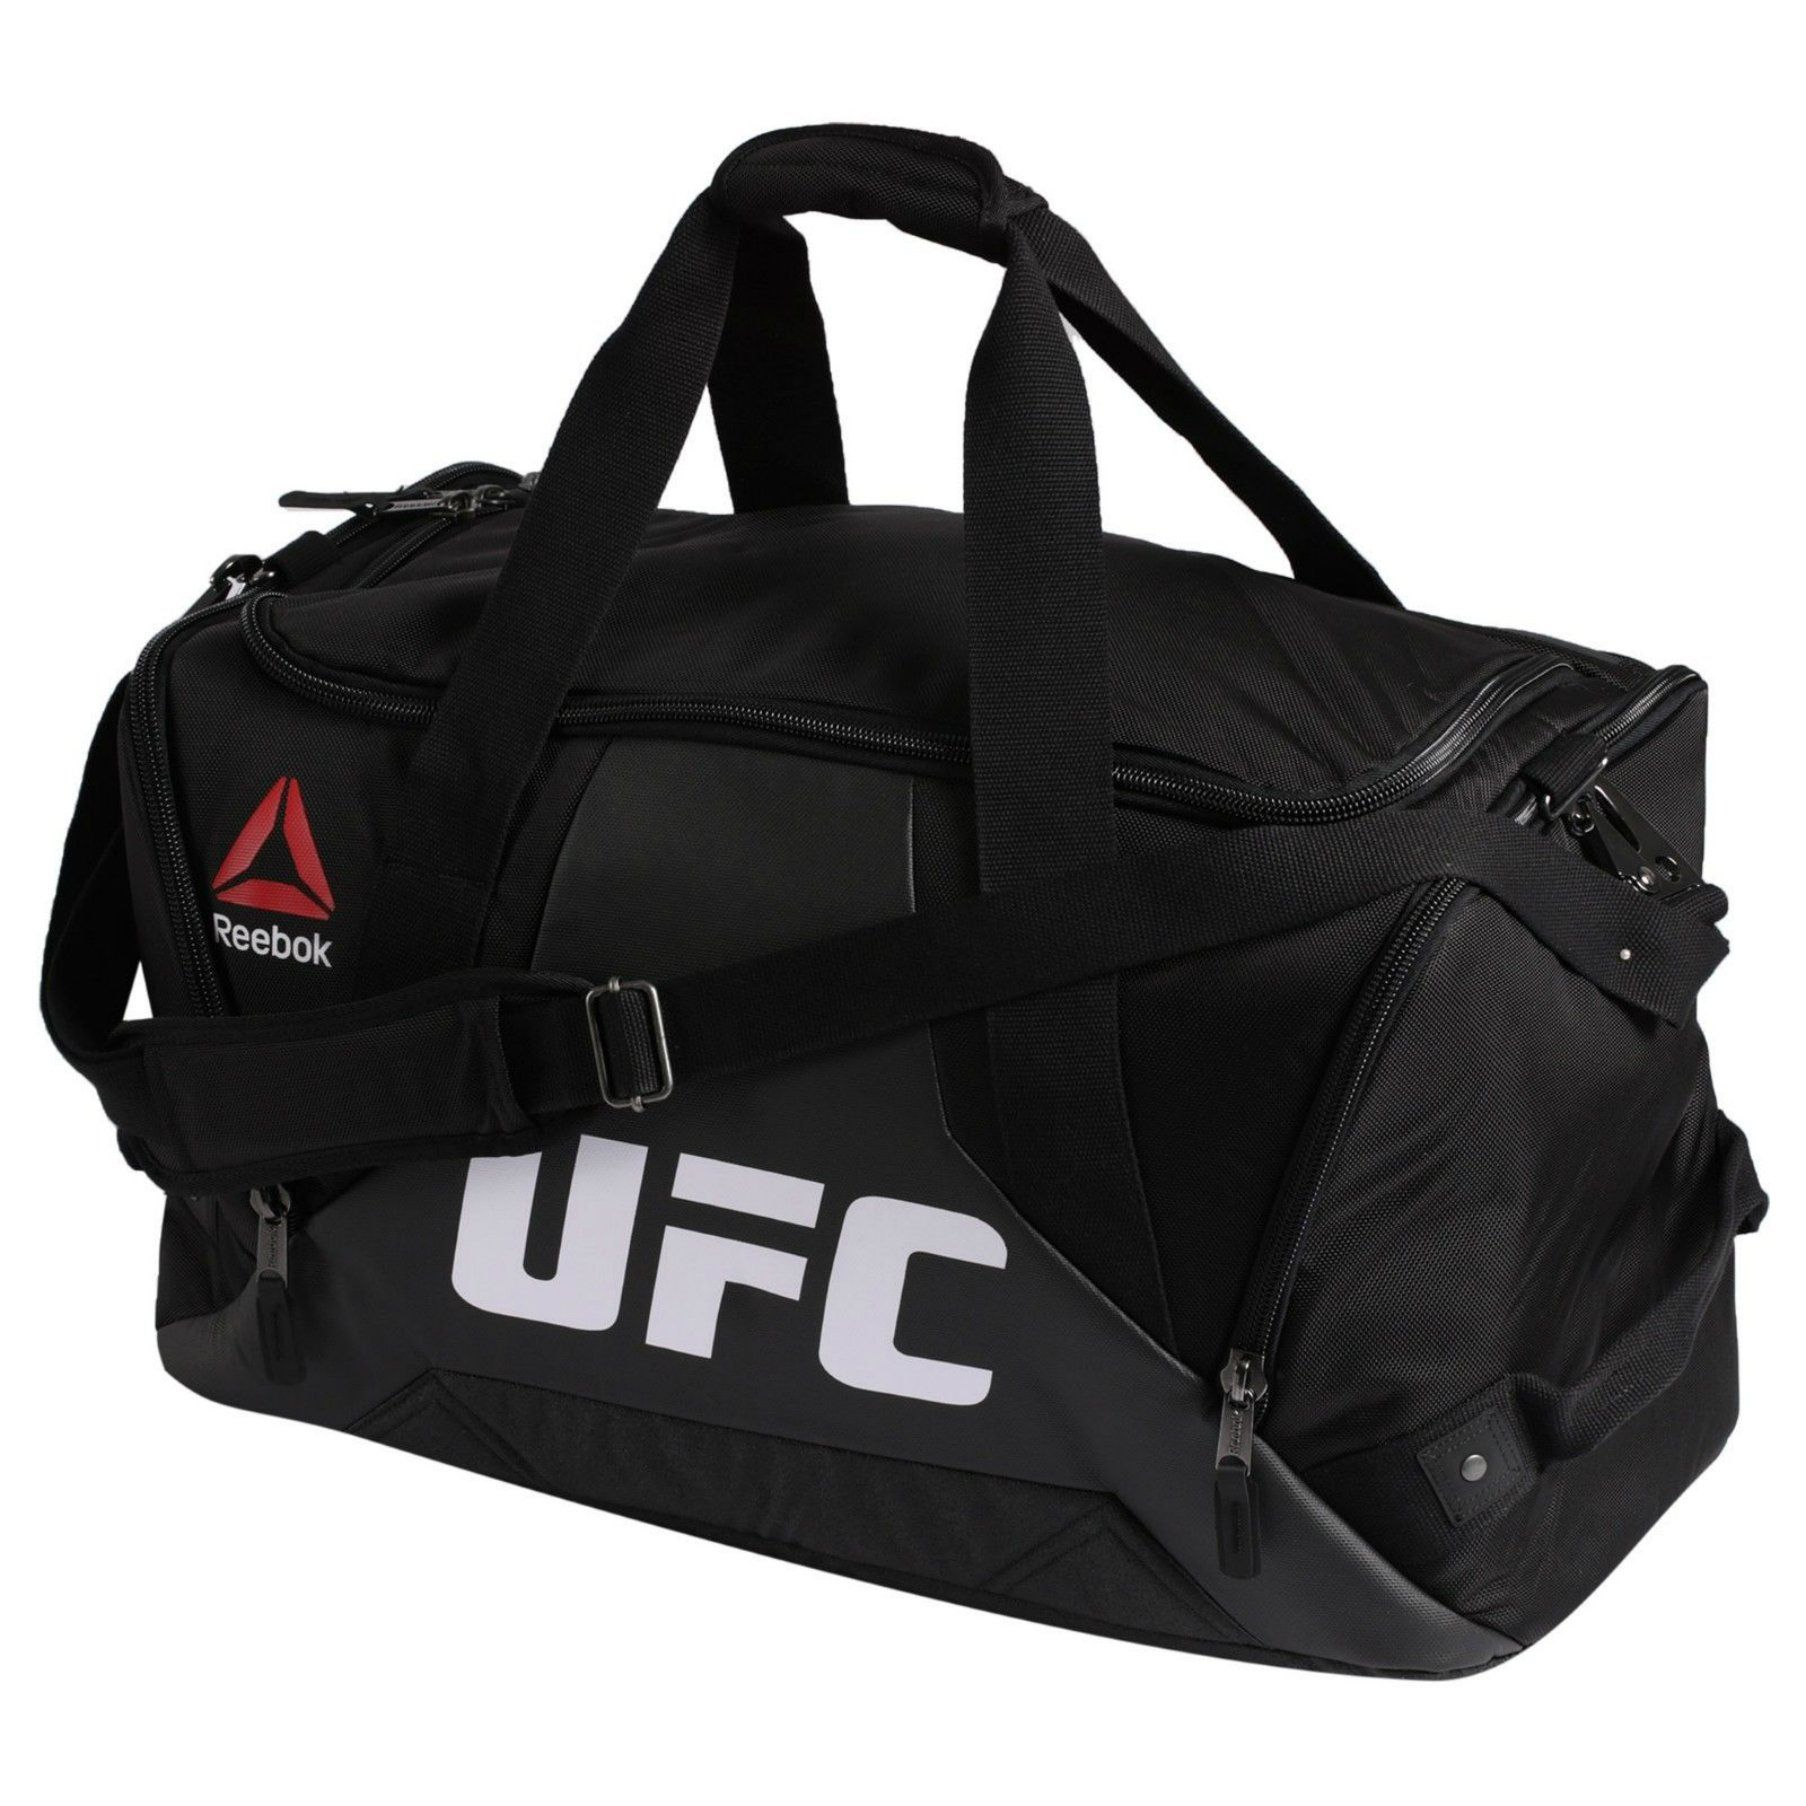 Reebok Combat Grip UFC Fitness   Training Duffle Sport Bag in Black White  Red Yellow f09e3a3d8b091